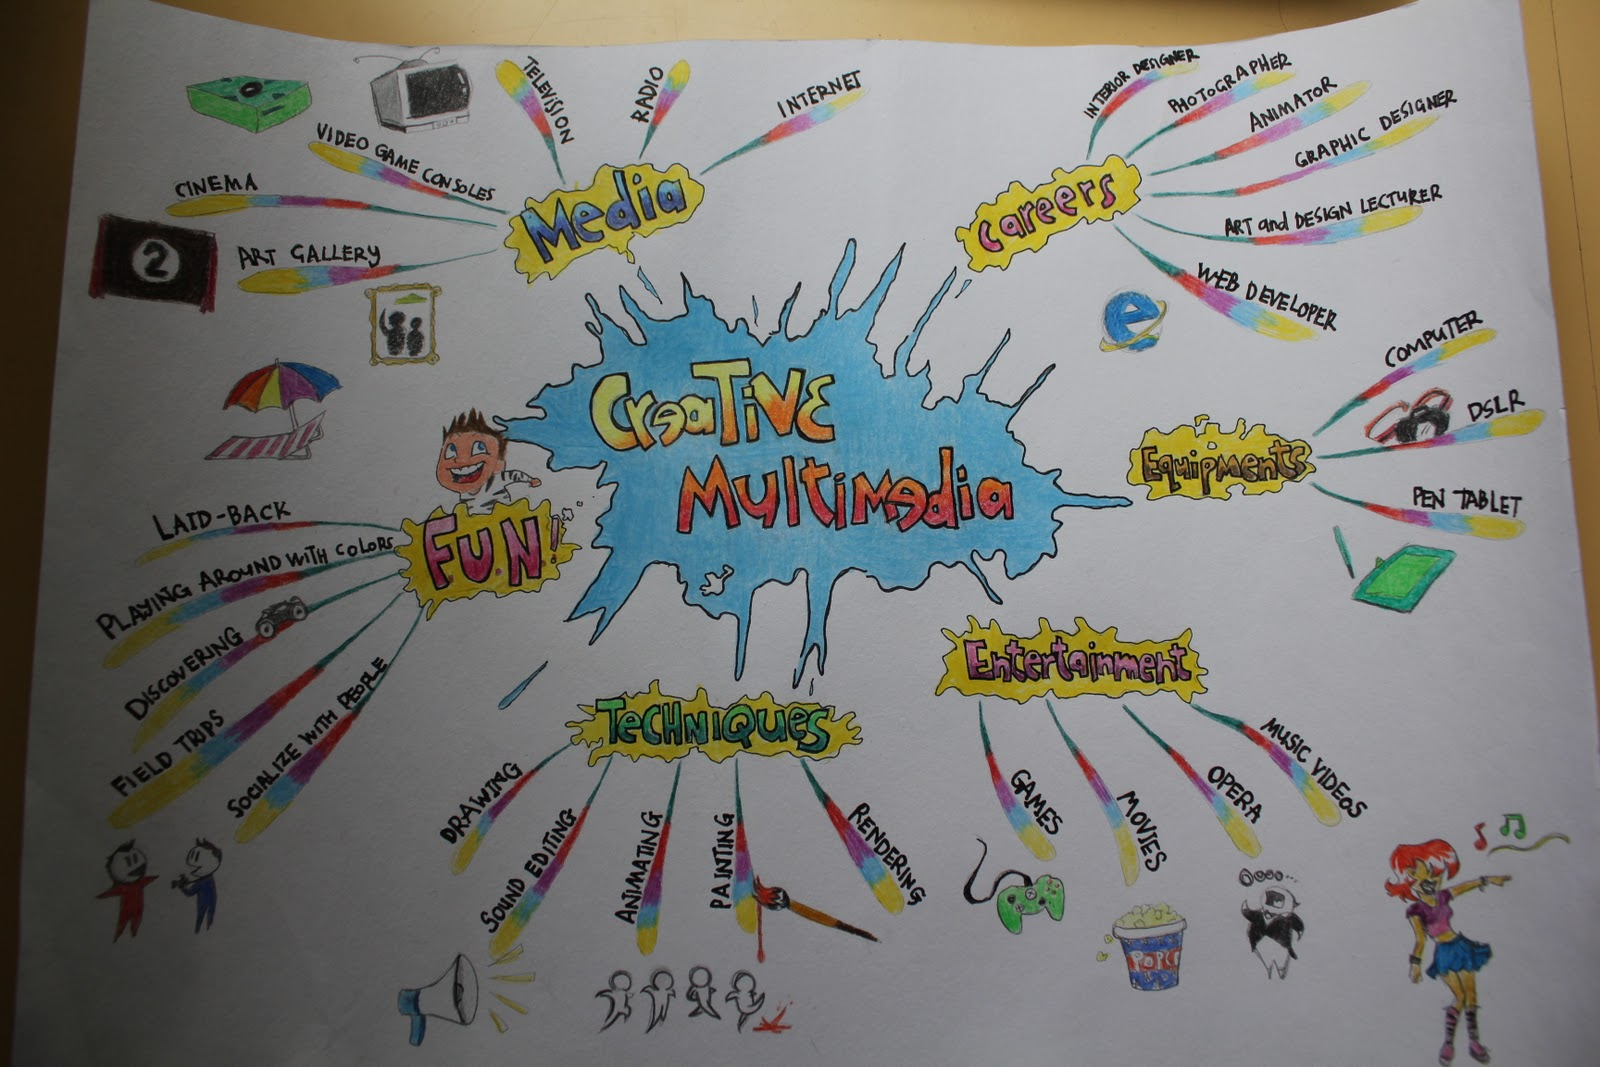 up of ideas for our final project and so we did a mind map on the subject of creative multimedia to see if that would jolt any ideas out of us d